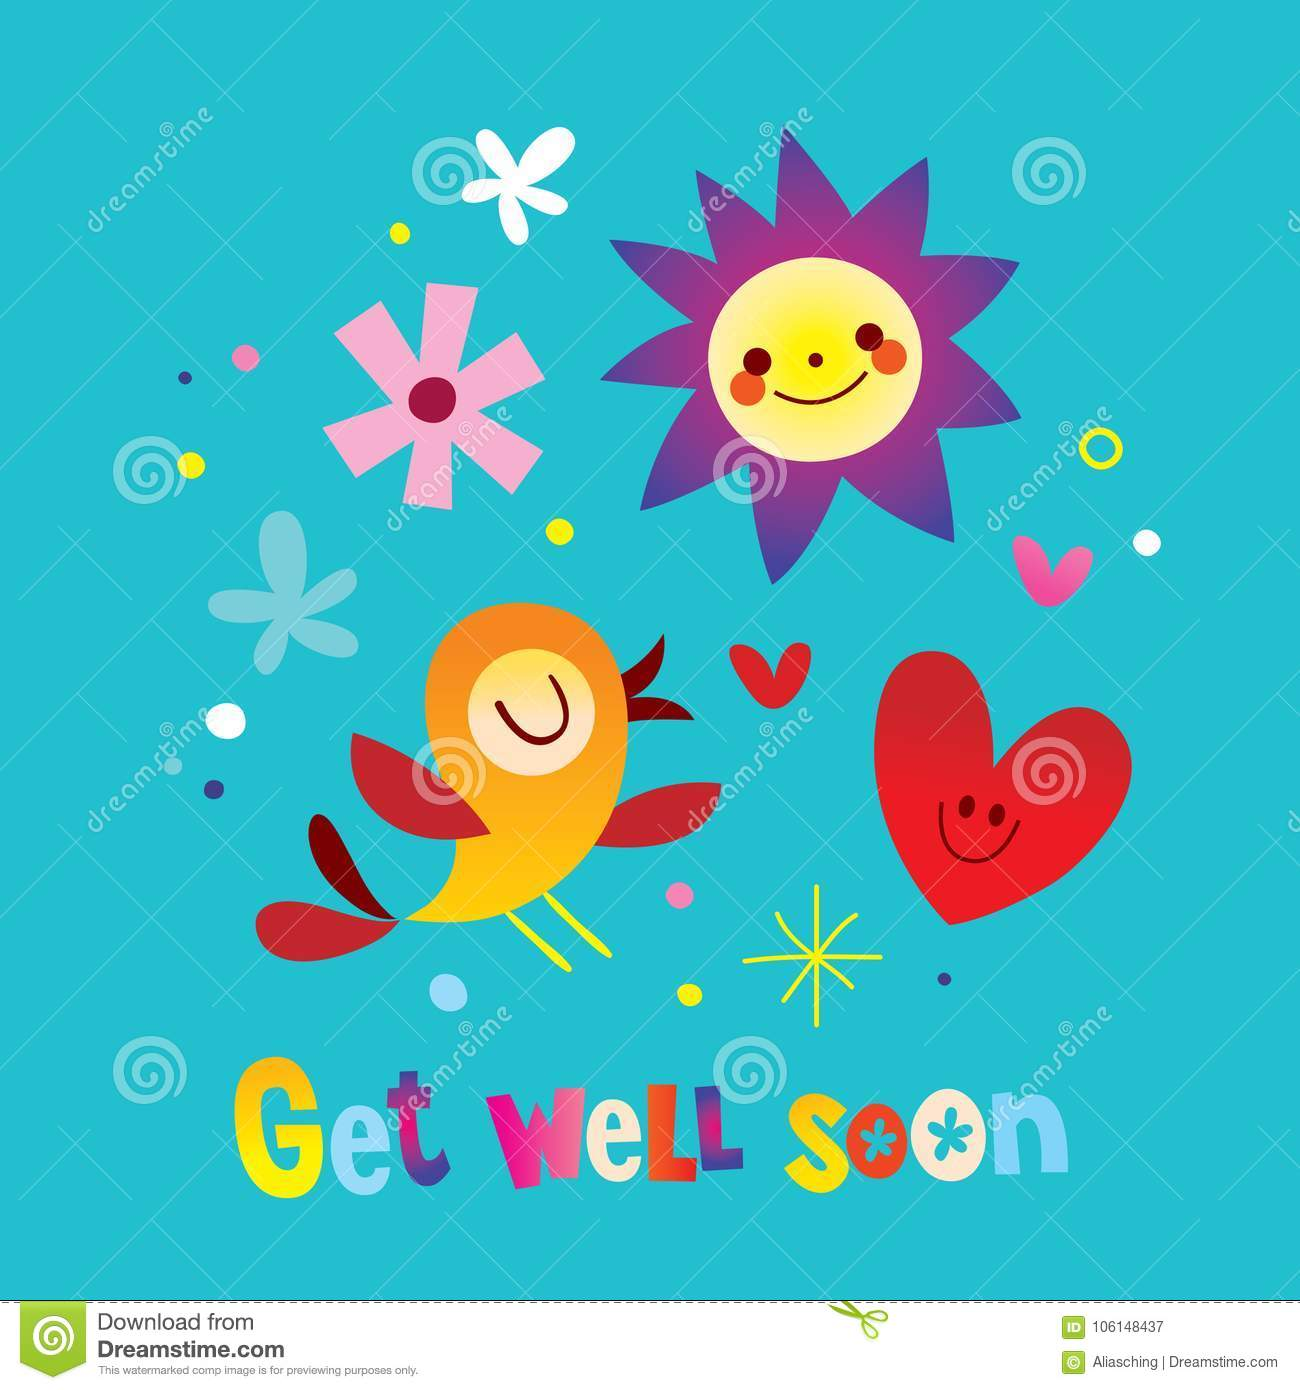 Get Well Soon Stock Vector Illustration Of Greeting 106148437